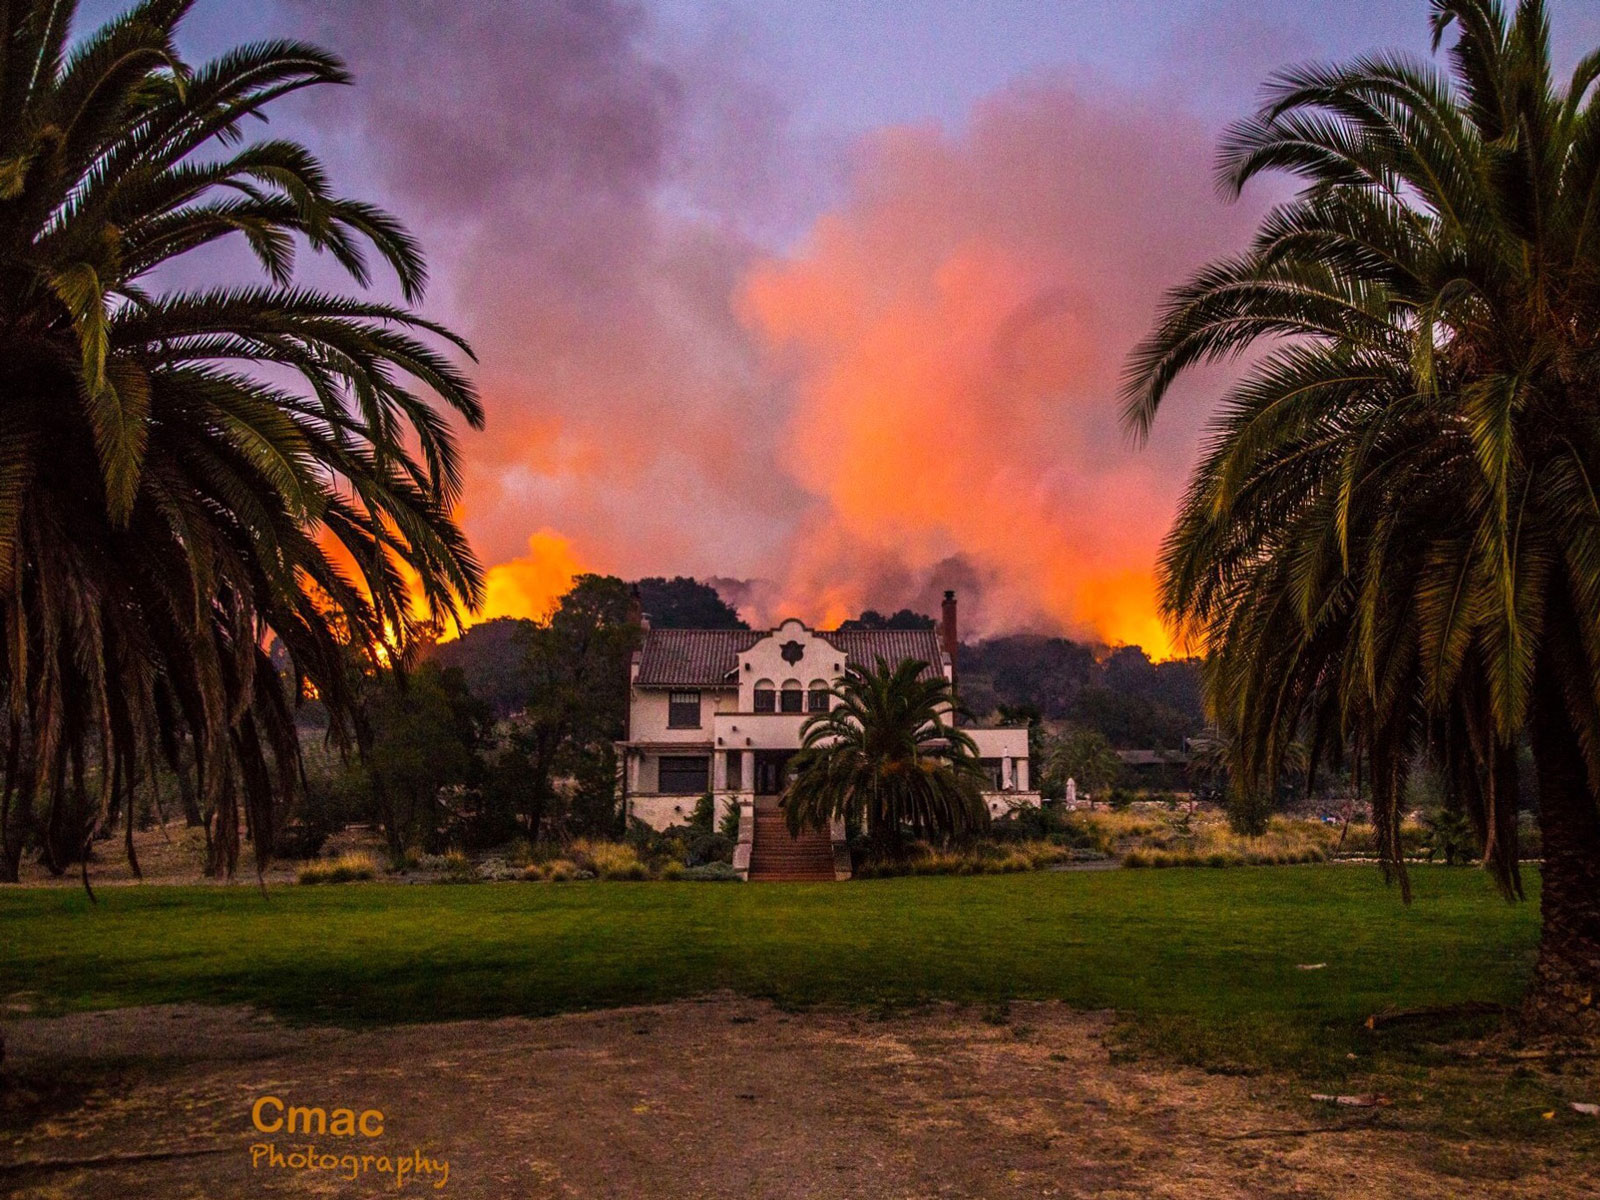 Napa Valley Fires Update